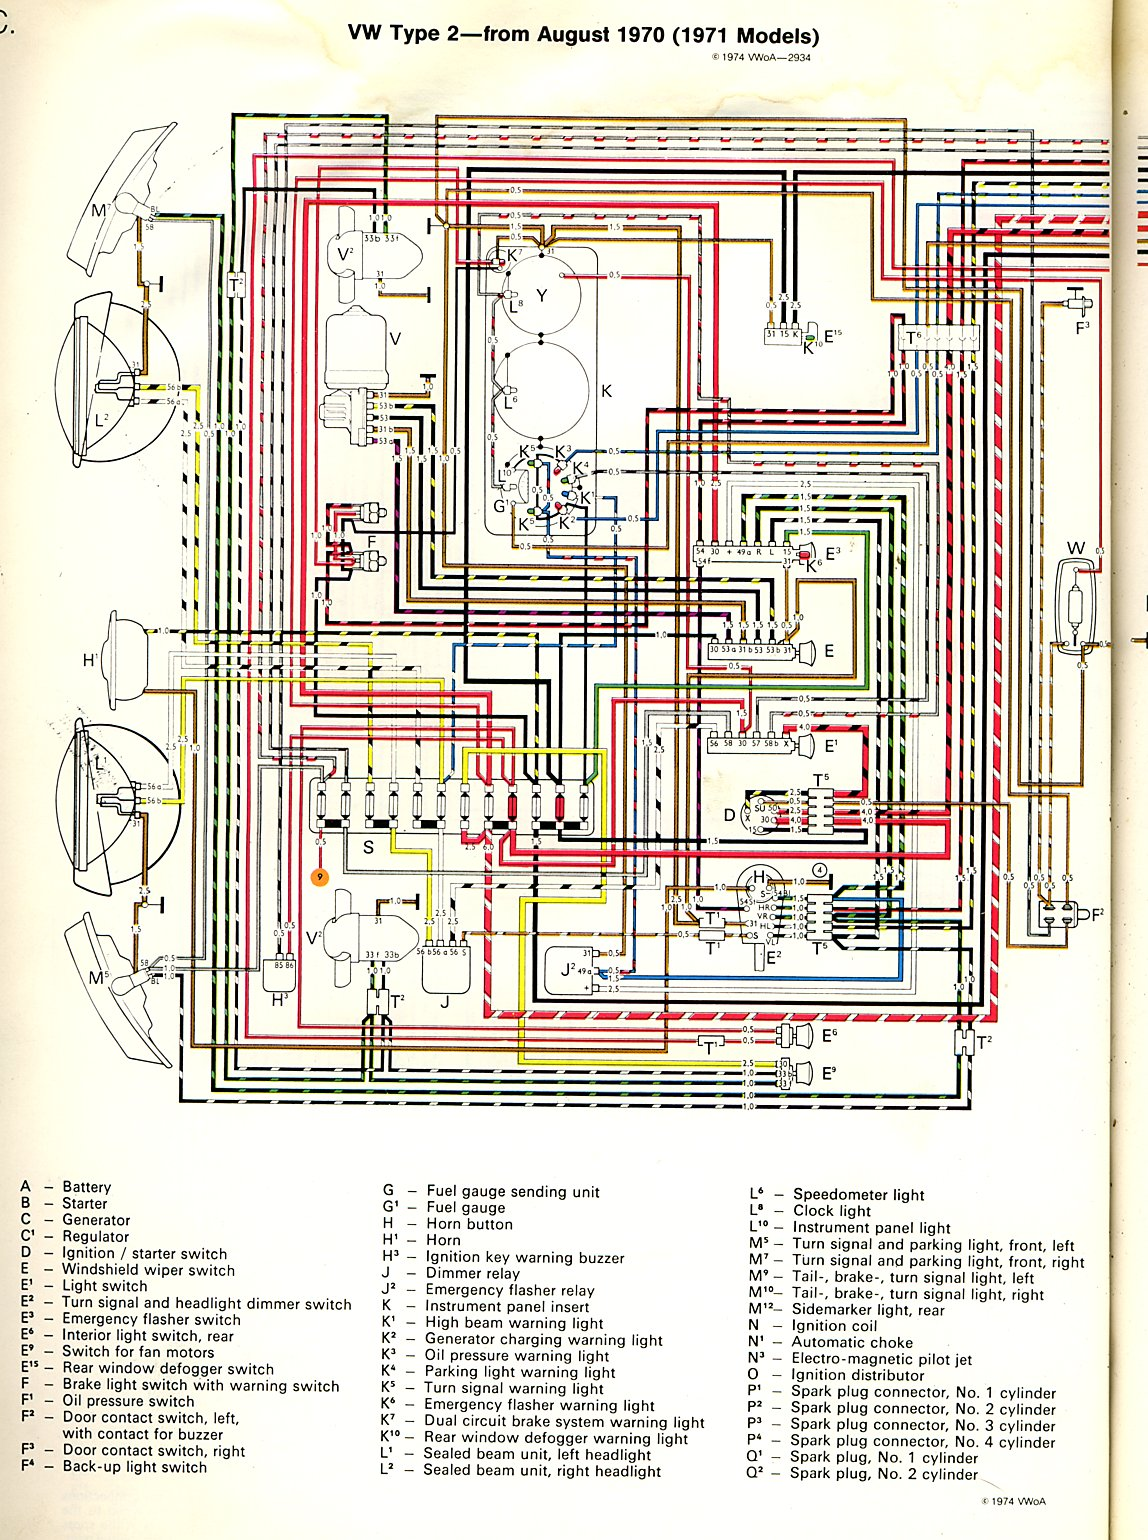 1971 bus the great fuel gauge sender wire hunt itinerant air at the top center of the diagram is the instrument cluster k the thin black lines are the ground wires which are really the metal of the backing plate